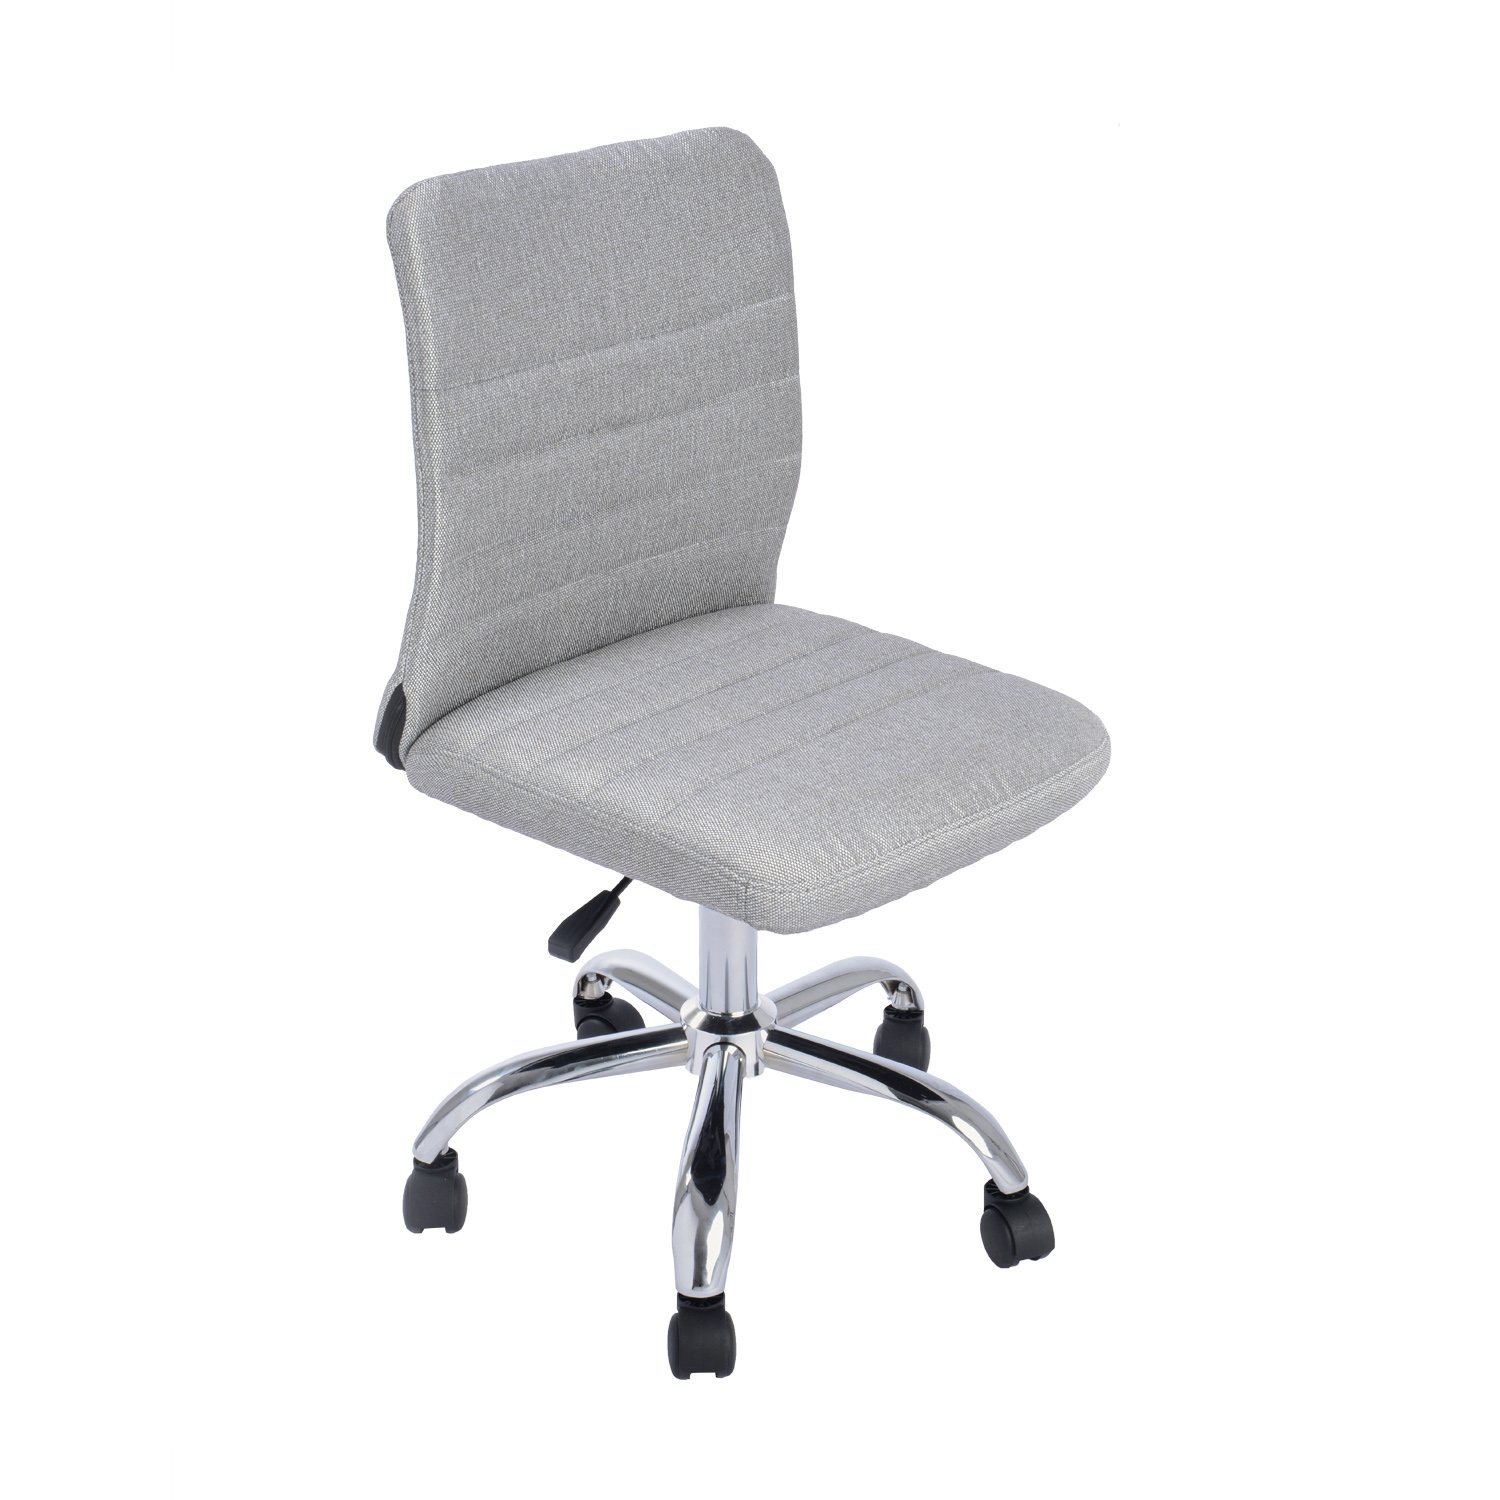 office chair fabric upholstery. amazoncom greenforest ergonomic mid back armless adjustable chair with fabric upholstery grey kitchen u0026 dining office g